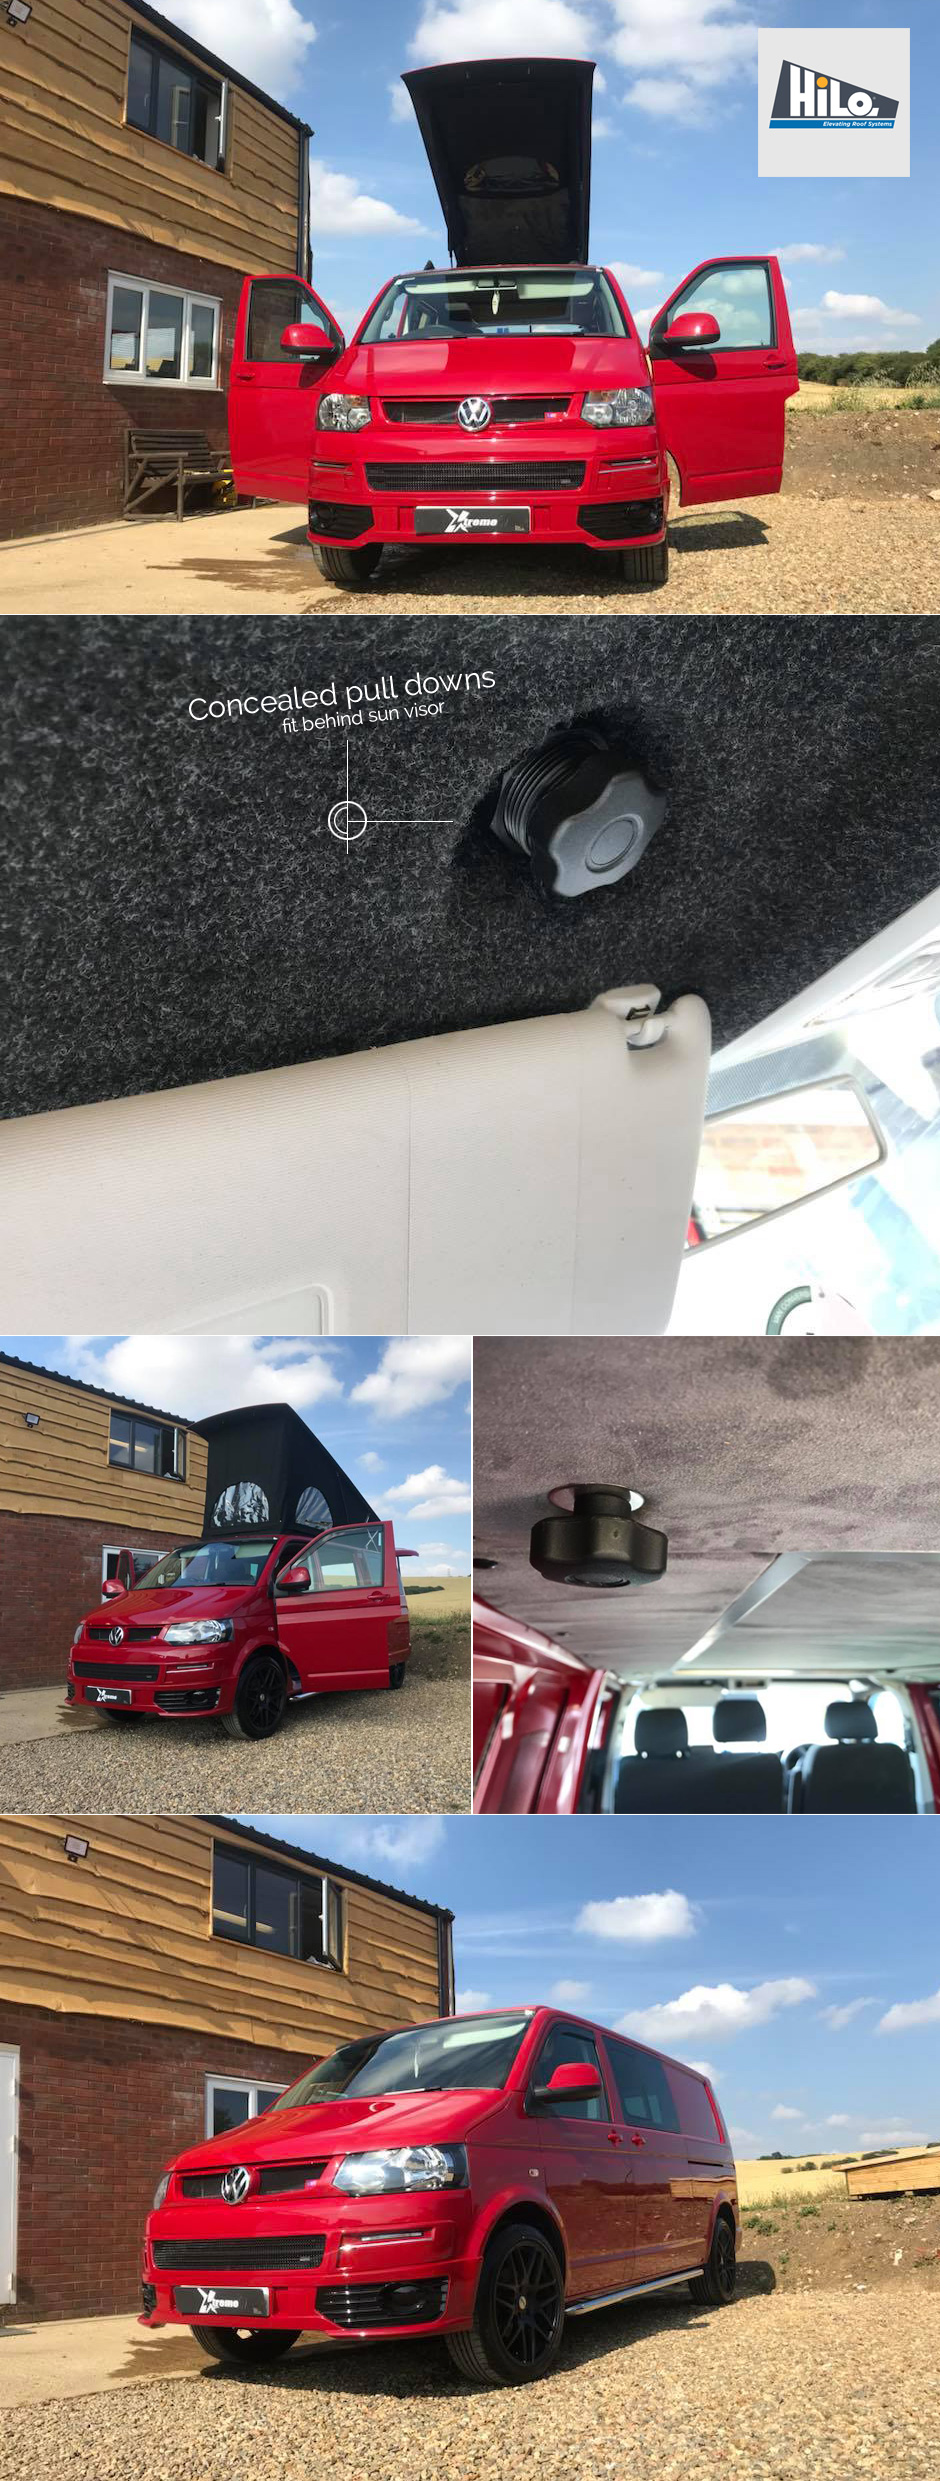 poptop hiloroof vw t6 conversion xtremevan